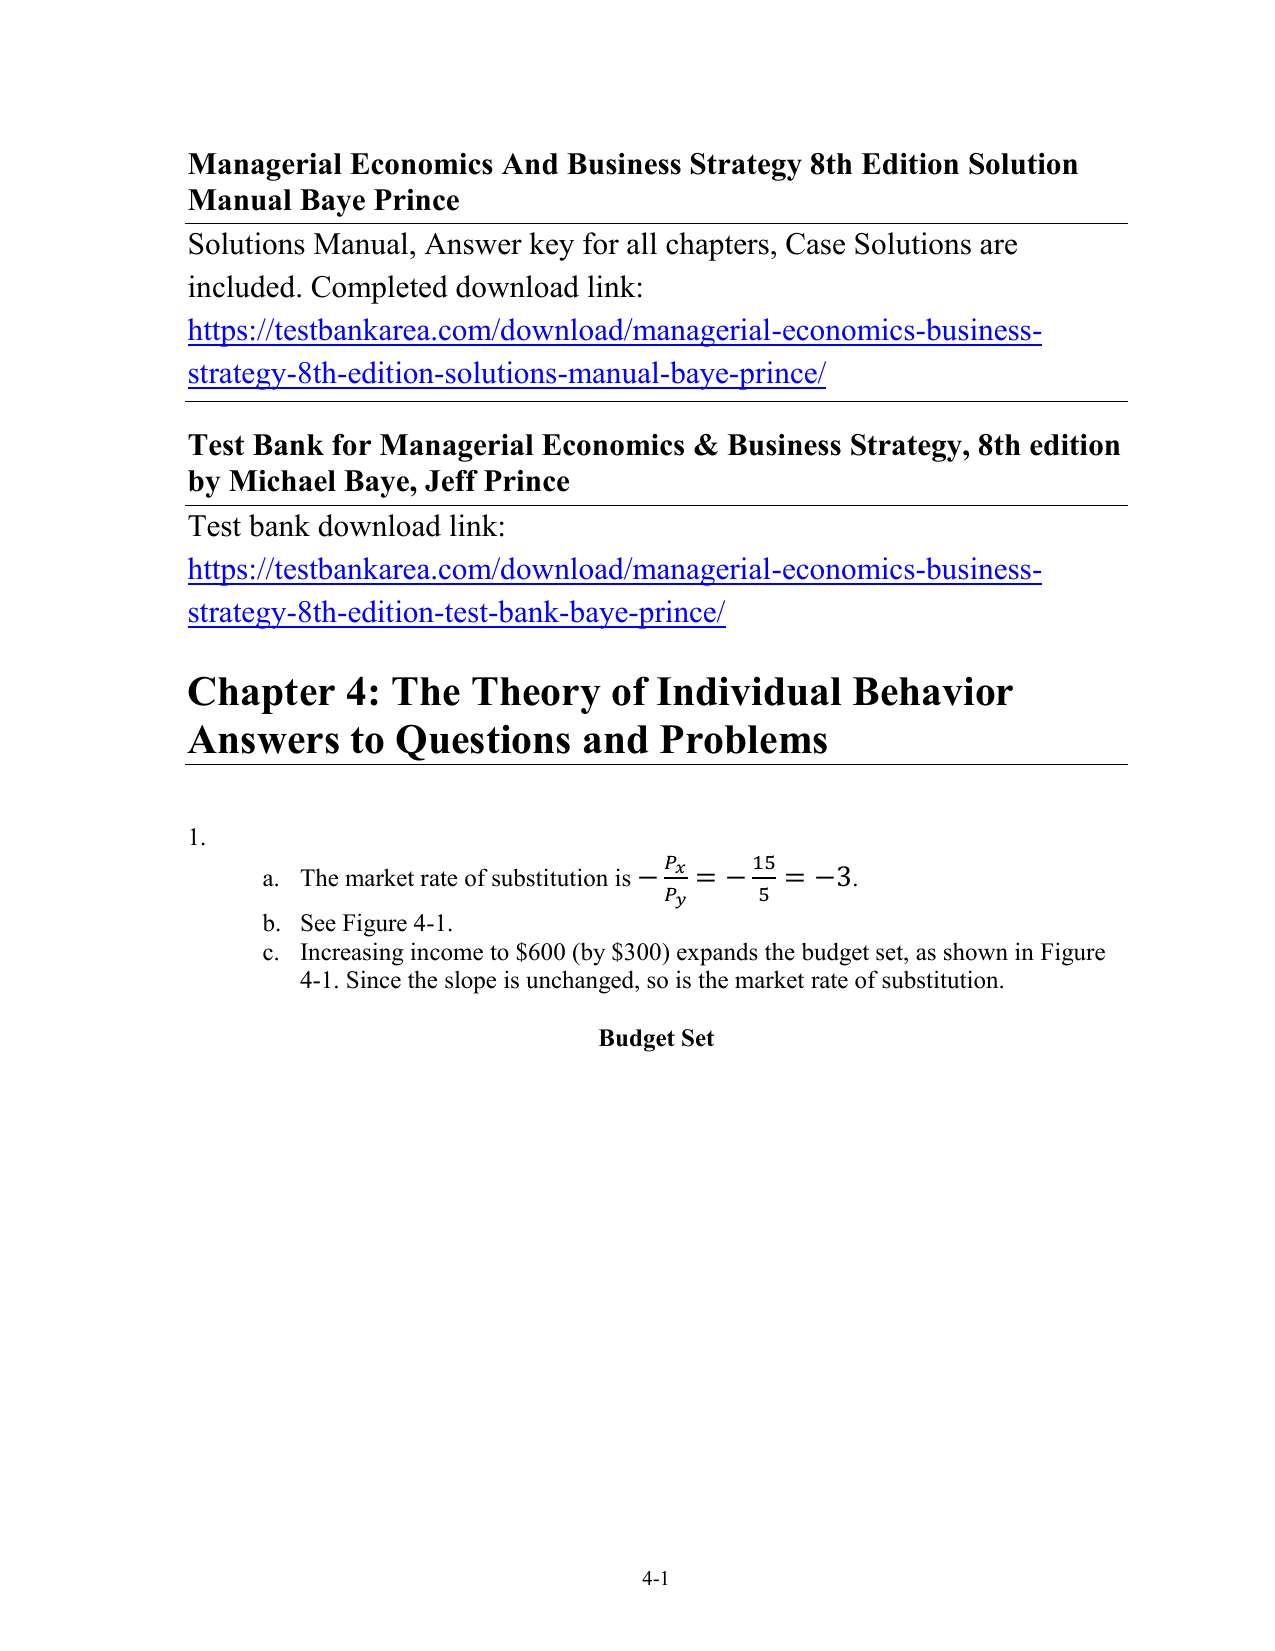 managerial economics and business strategy 8th edition solution manual pdf